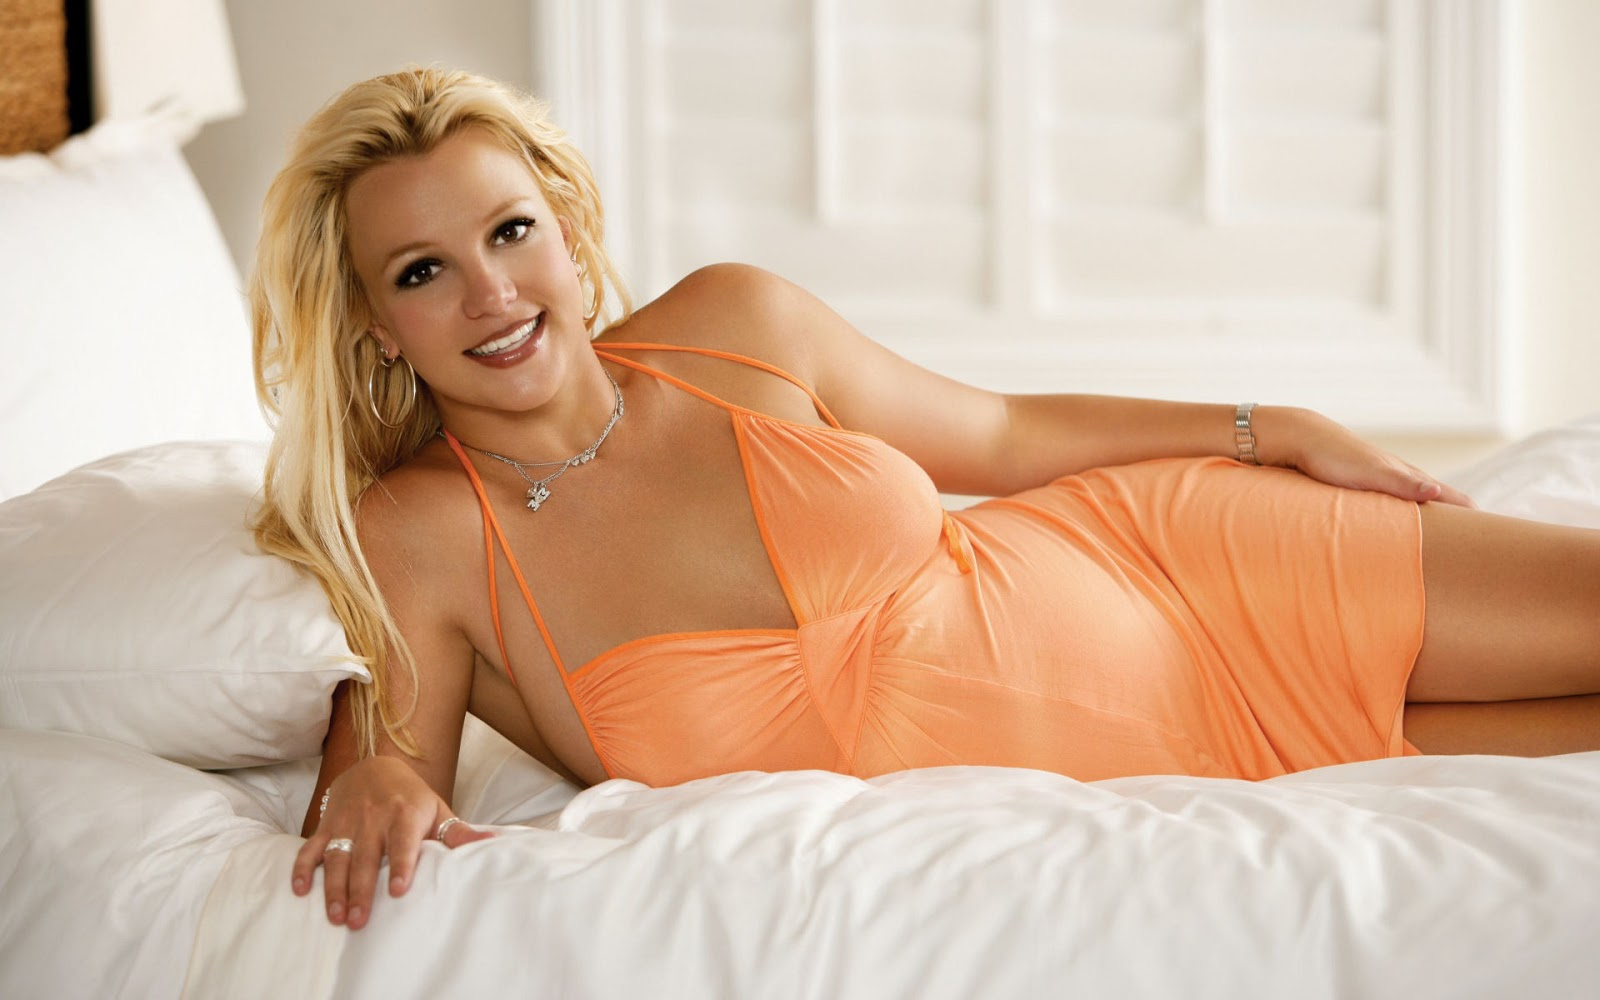 Britney Spears on Bed Smiling